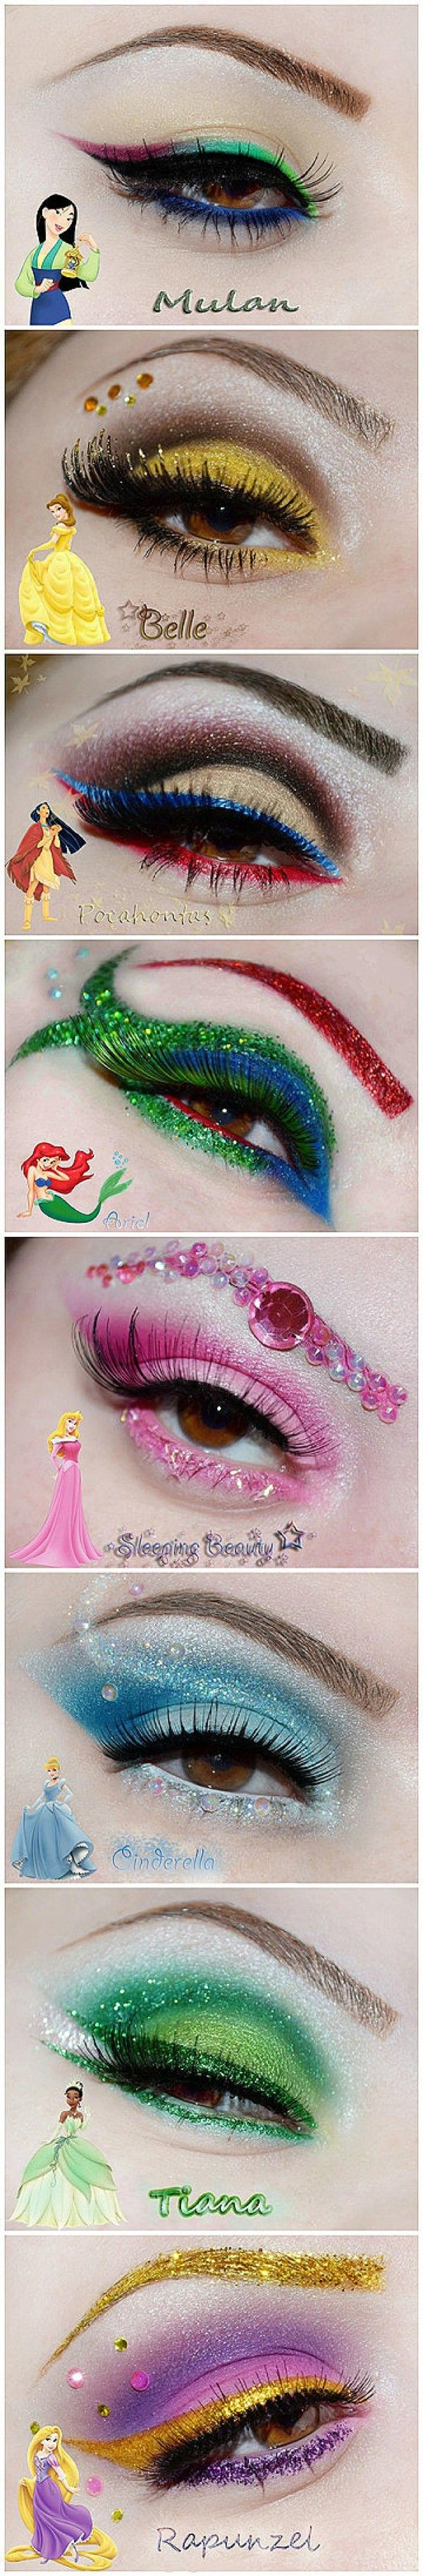 Disney Princess Eye Makeup